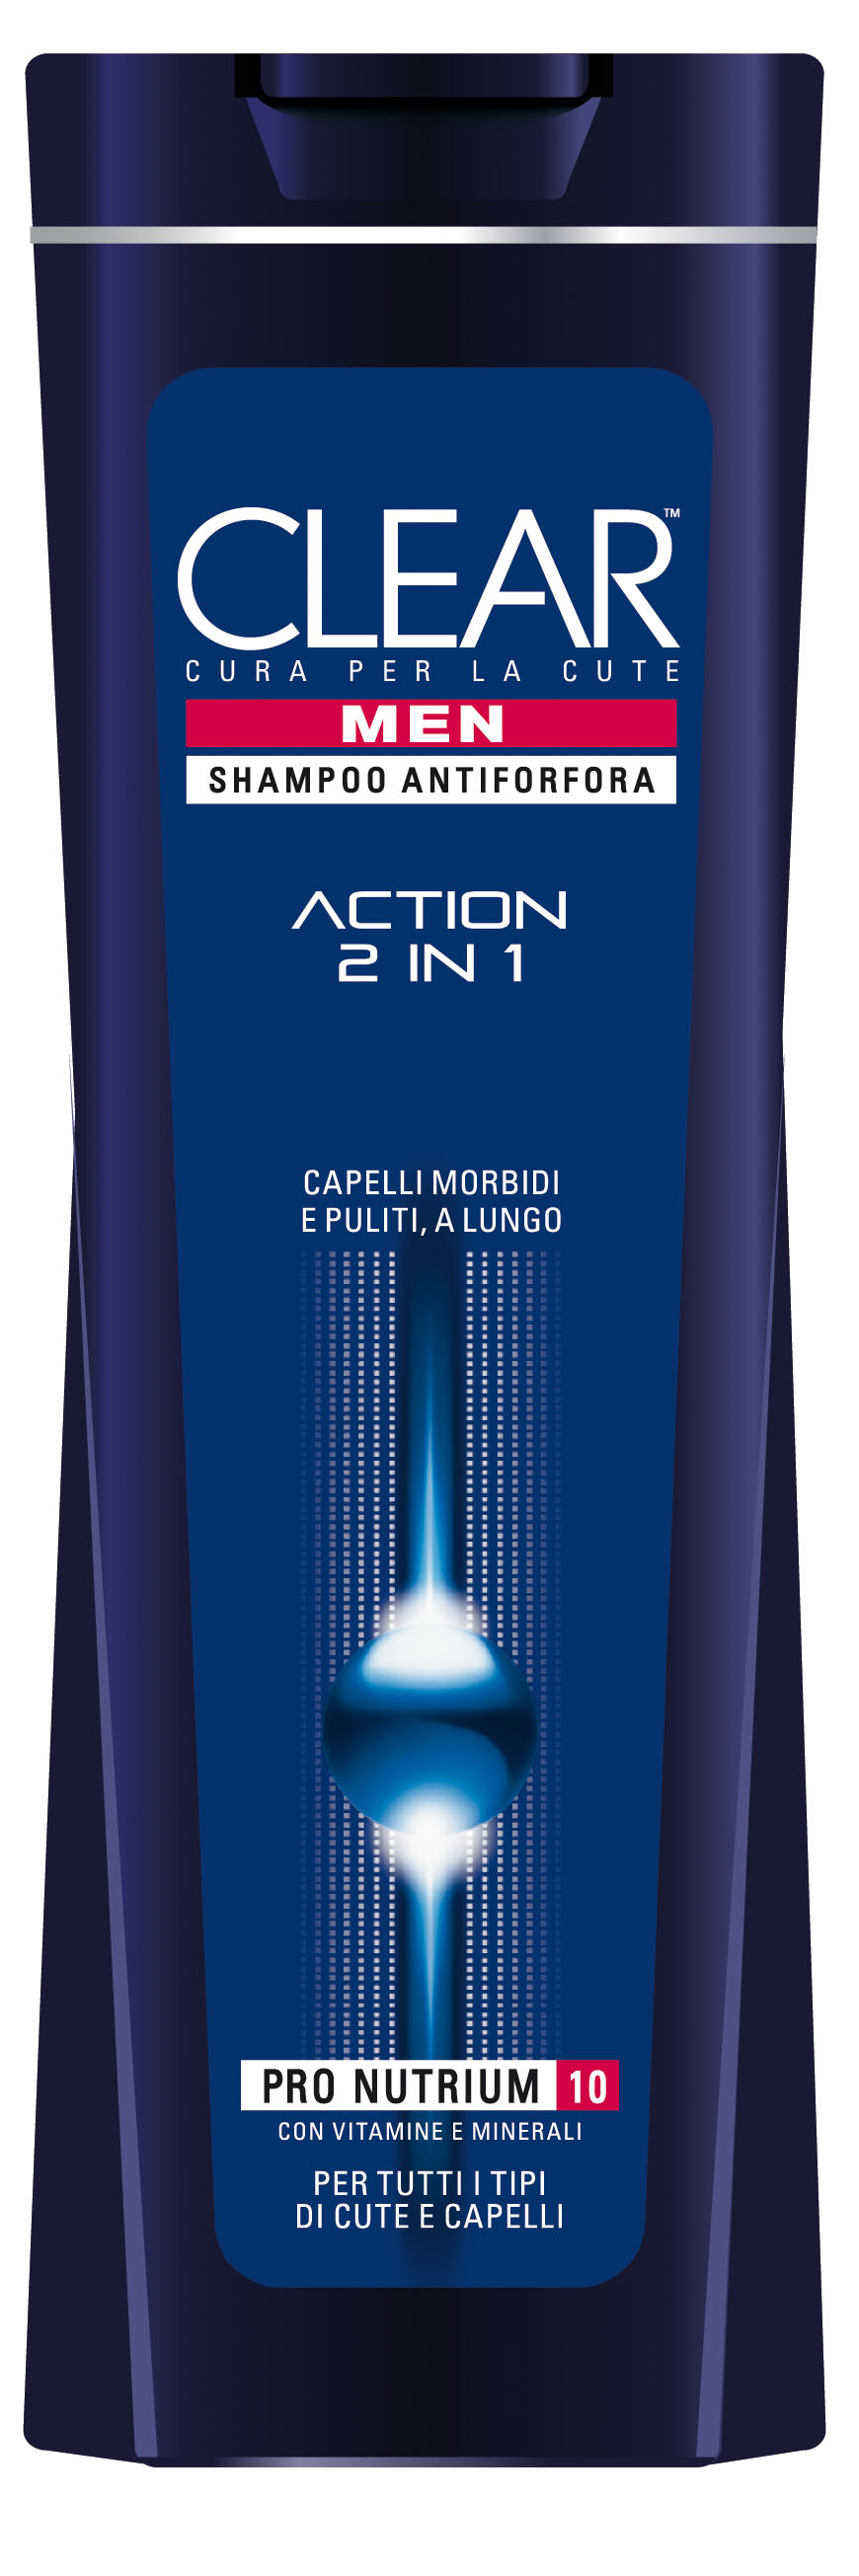 Clear Shampoo For Men 2in1 Action